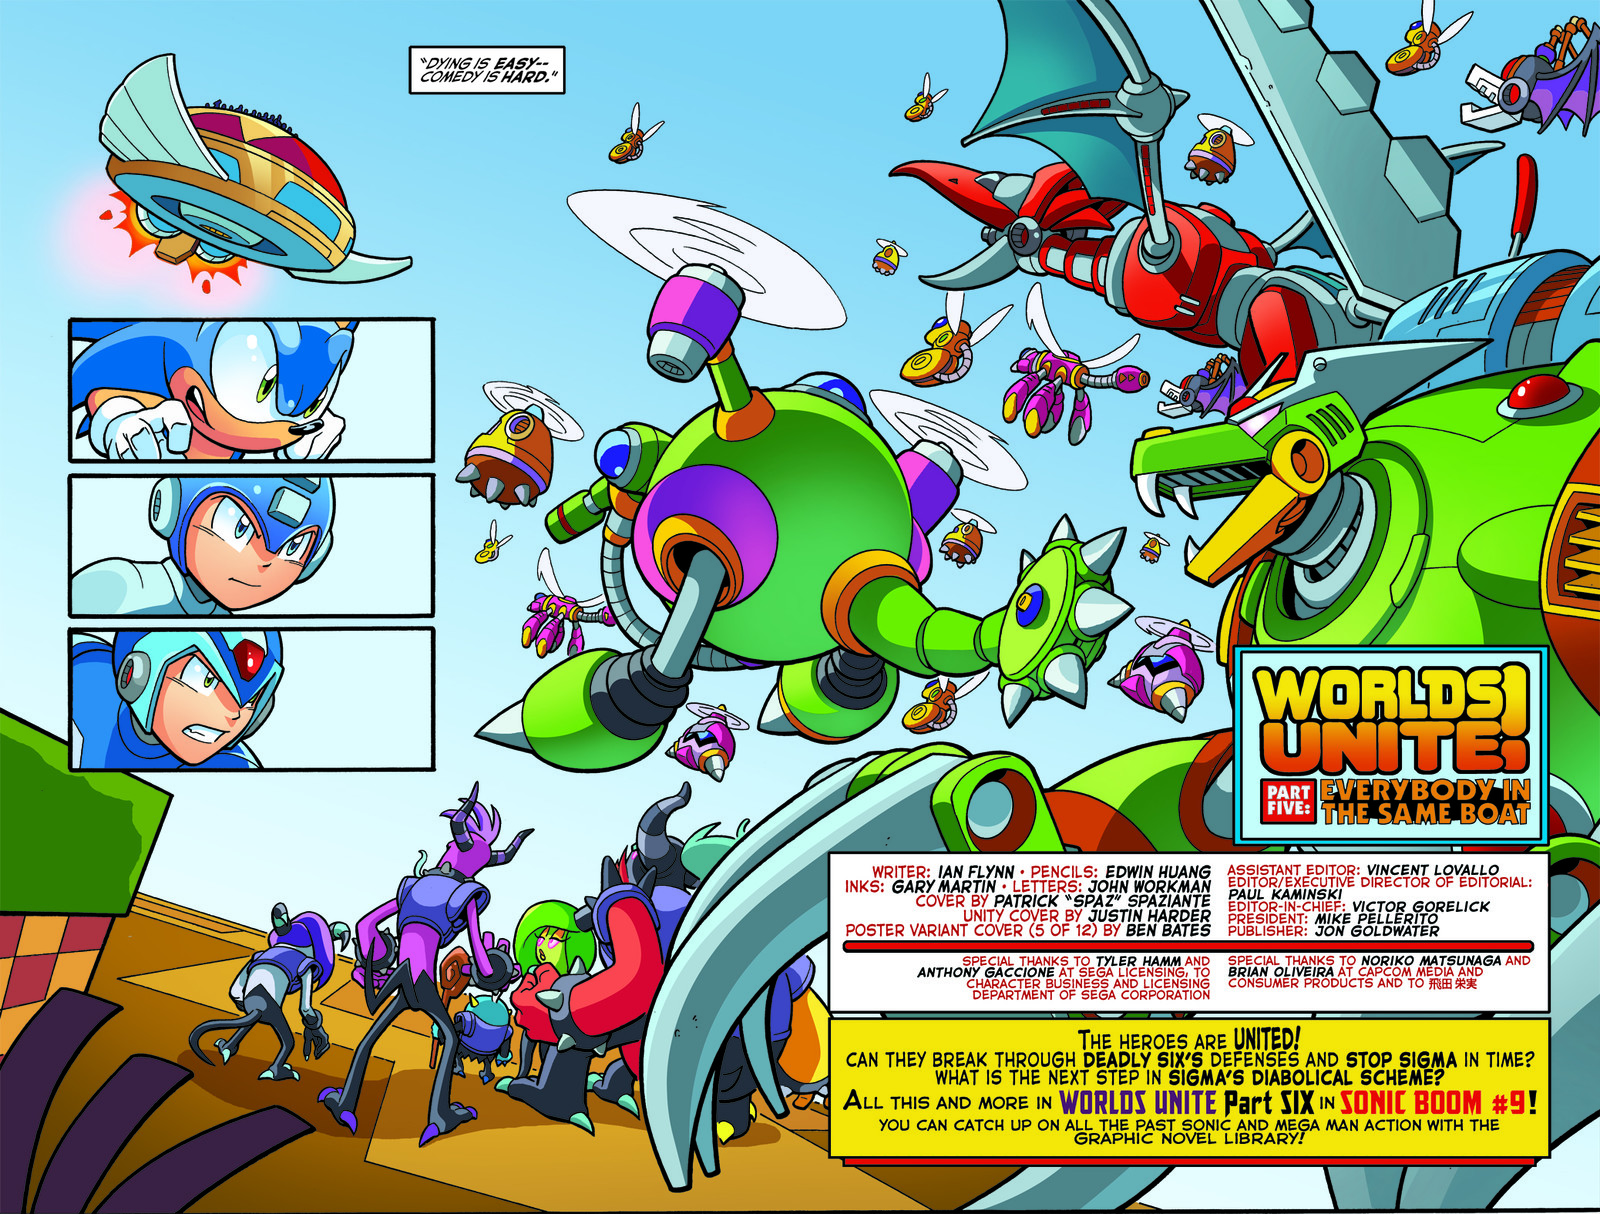 SONIC UNIVERSE - #77, pages 19-20